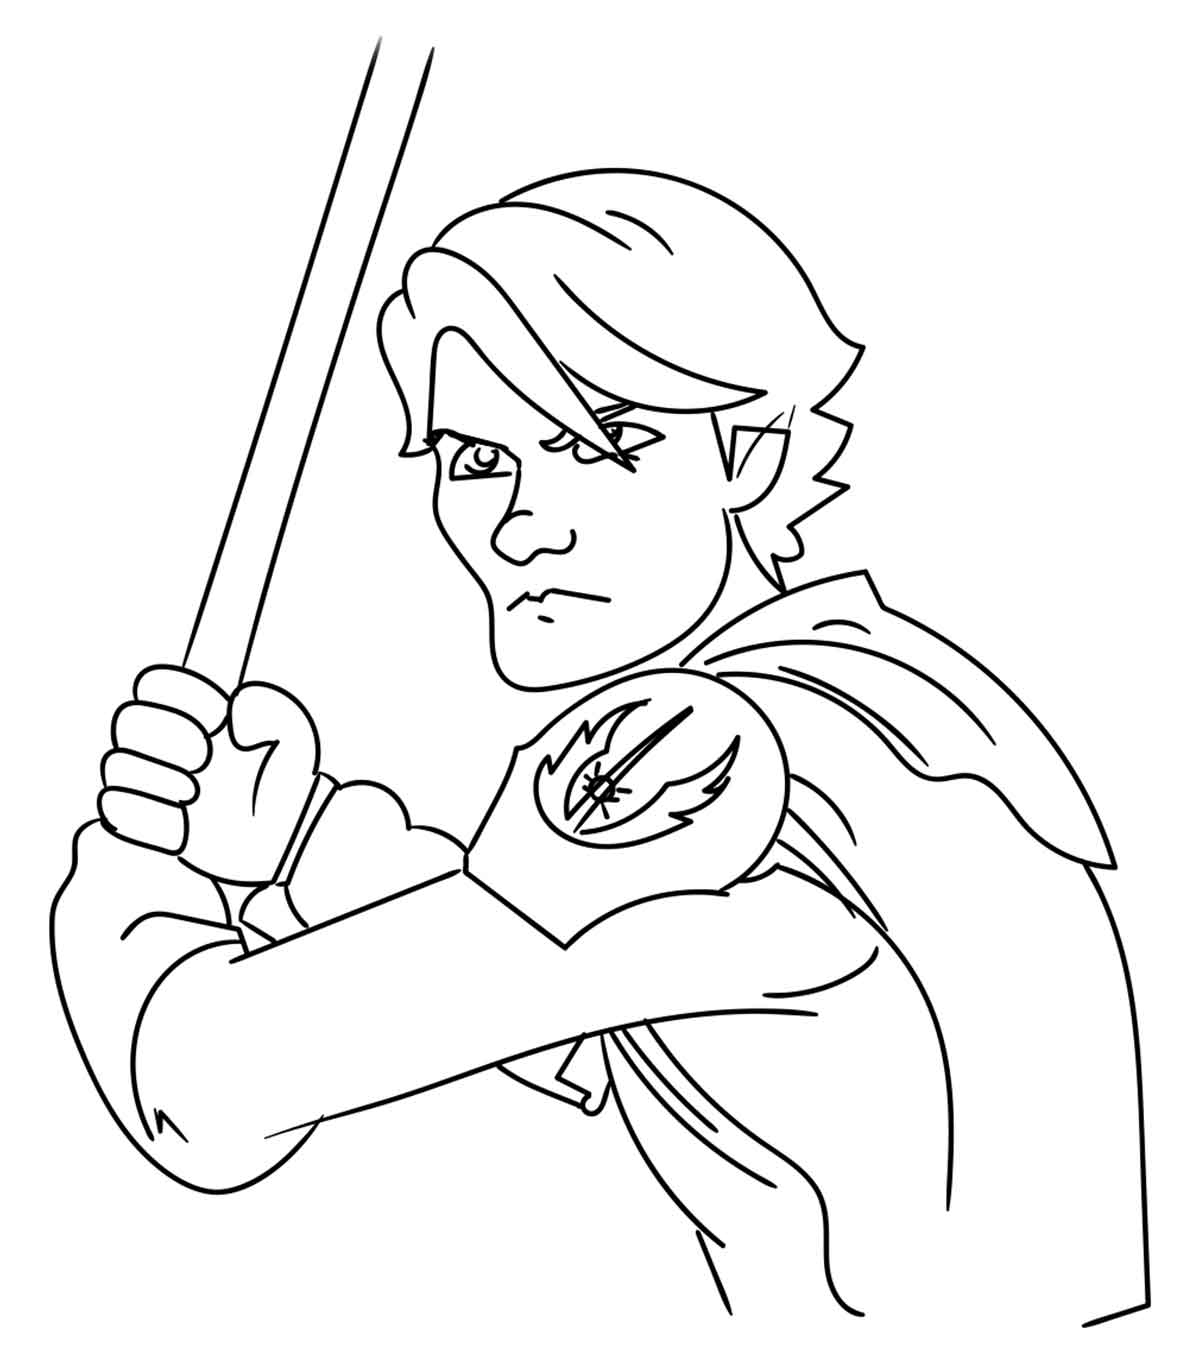 Star Wars Clone Coloring Pages Top 25 Free Printable Star Wars Coloring Pages Online